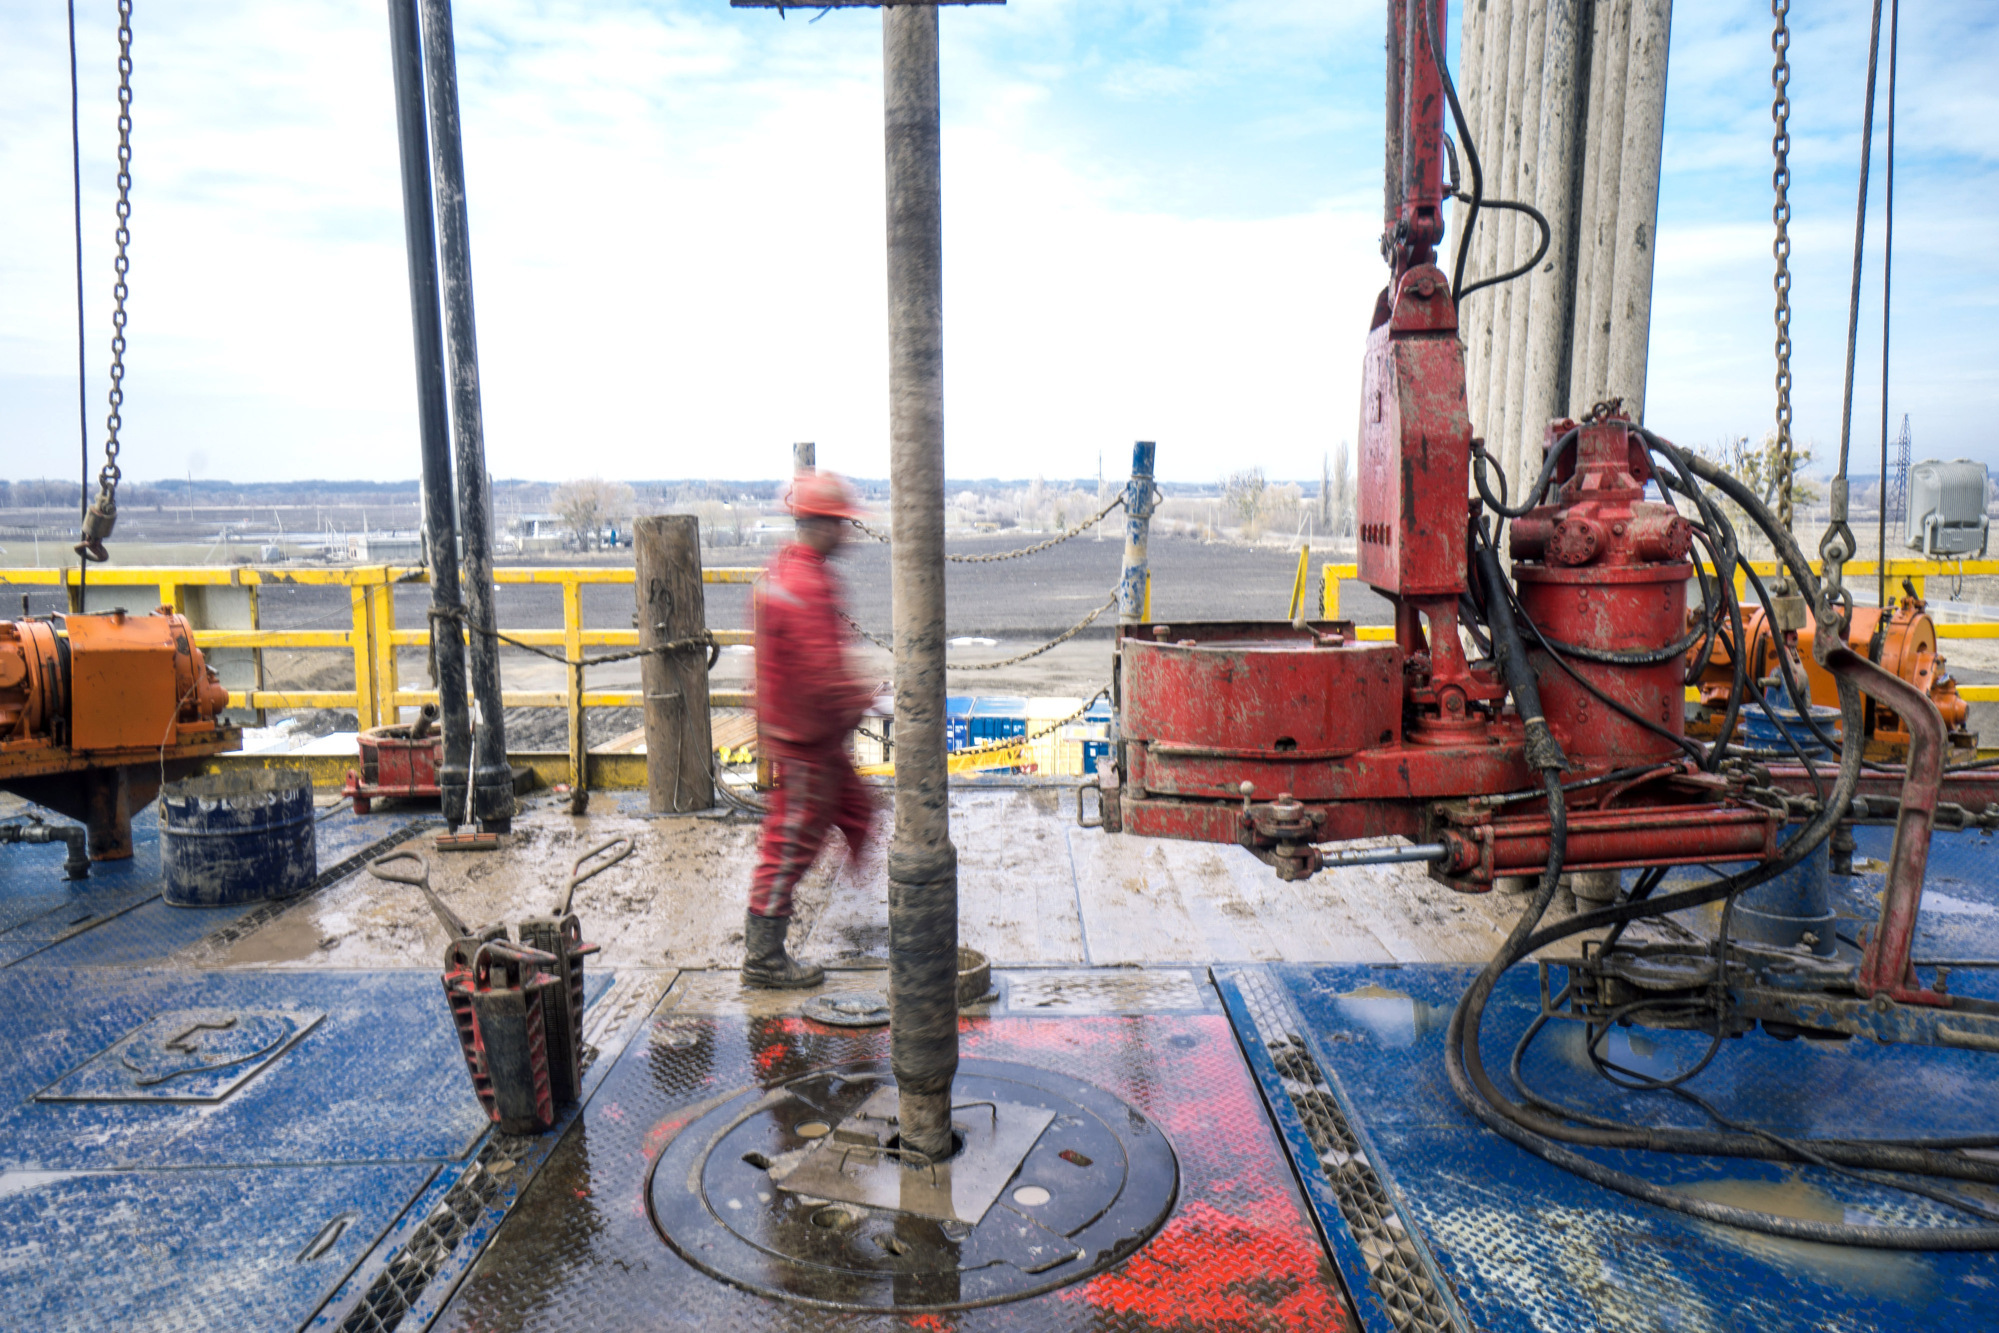 A Chinese worker from XinJiang Beiken Energy Engineering Stock Co. Ltd. walks past the turntable and drill pipe during gas drilling operations for the Ukrgazvydobuvannya Subsidiary Co. of Naftogaz of Ukraine National JSC in Poltava region, Ukraine, on Wednesday, April 4, 2018. Ukraine transports about one third of Russia's natural gas supplies to the European Union through a pipeline network connected with Slovakia, Romania, Hungary, Poland and Moldova. Photographer: Vincent Mundy/Bloomberg